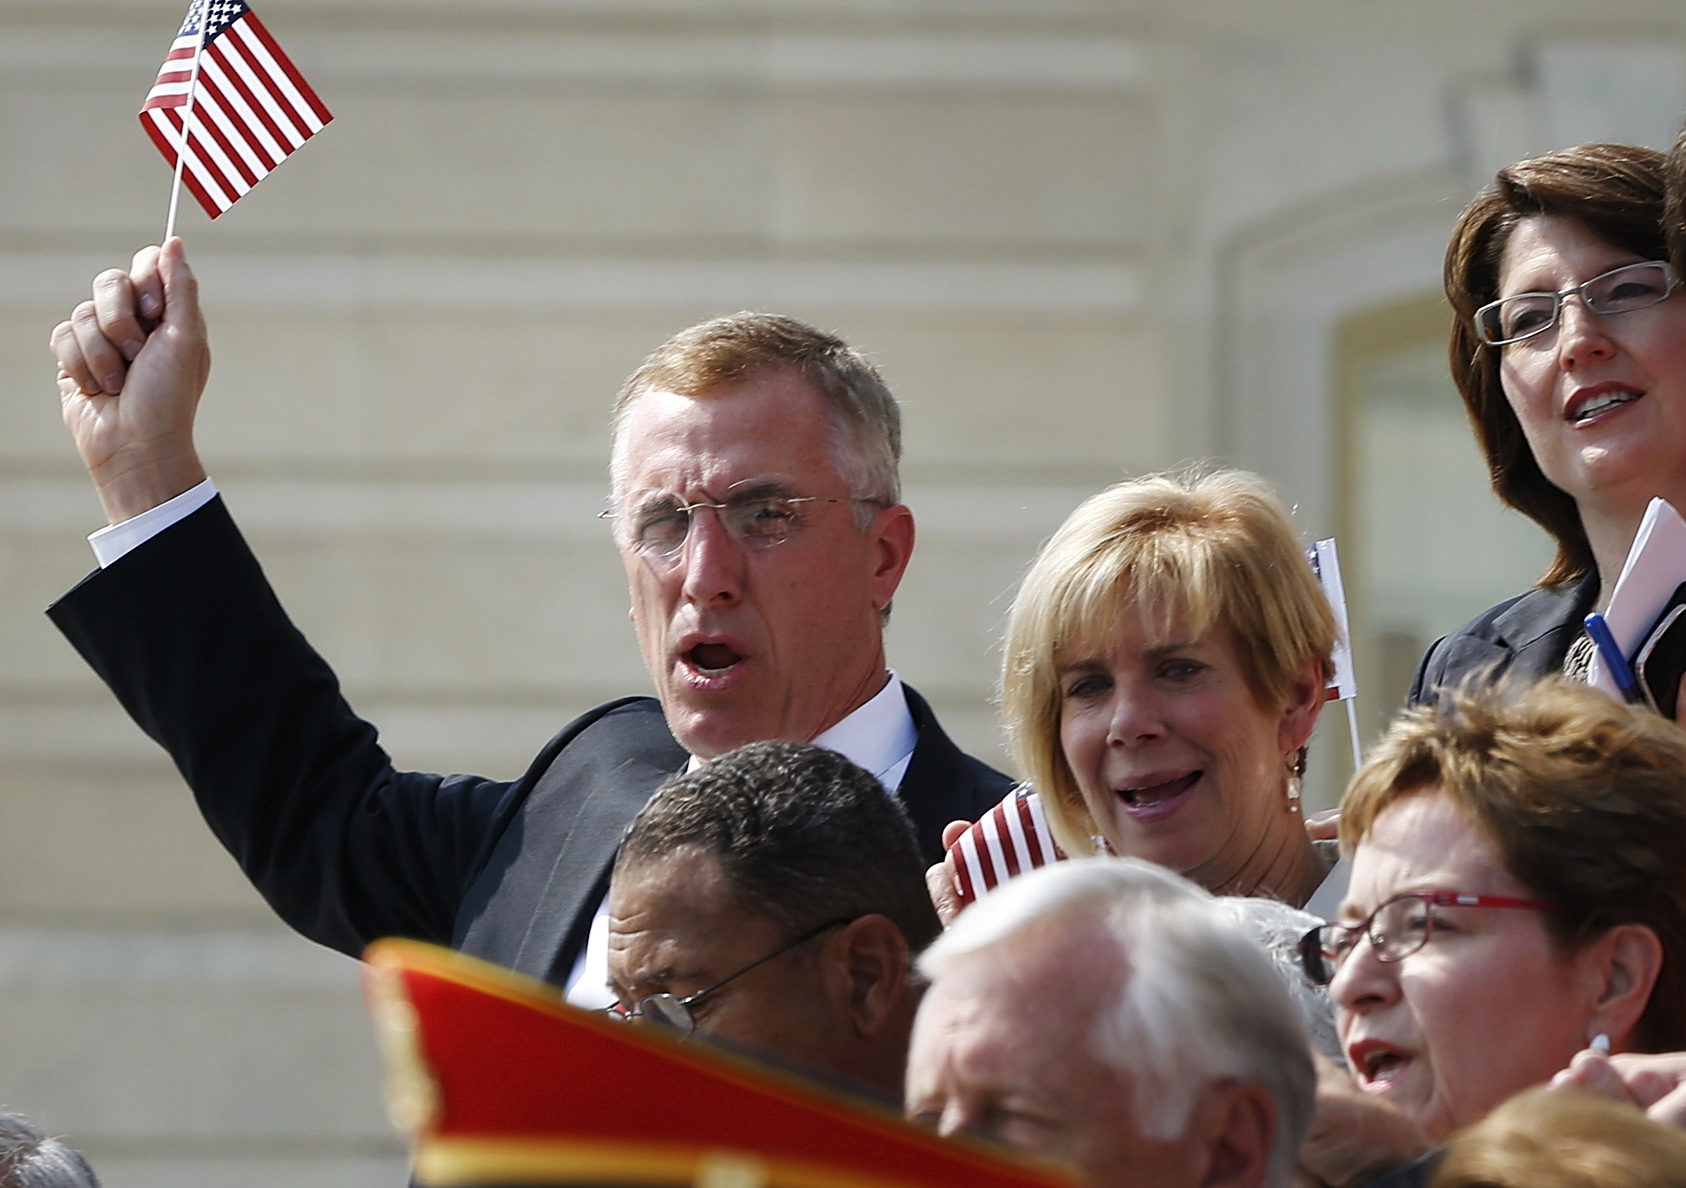 """U.S. Representative Tim Murphy (R-PA) holds up a U.S. flag as he and other members of the U.S. Congress sing """"God Bless America"""" in remembrance of lives lost in the 9/11 attacks, on the steps of the U.S. Capitol in Washington, September 11, 2013. Bagpipes, bells and a reading of the names of the nearly 3,000 people killed when hijacked jetliners crashed into the World Trade Center, the Pentagon and a Pennsylvania field marked the 12th anniversary of the September 11 attacks in 2001. REUTERS/Jonathan Ernst (UNITED STATES - Tags: POLITICS ANNIVERSARY DISASTER) - GM1E99C03BU01"""